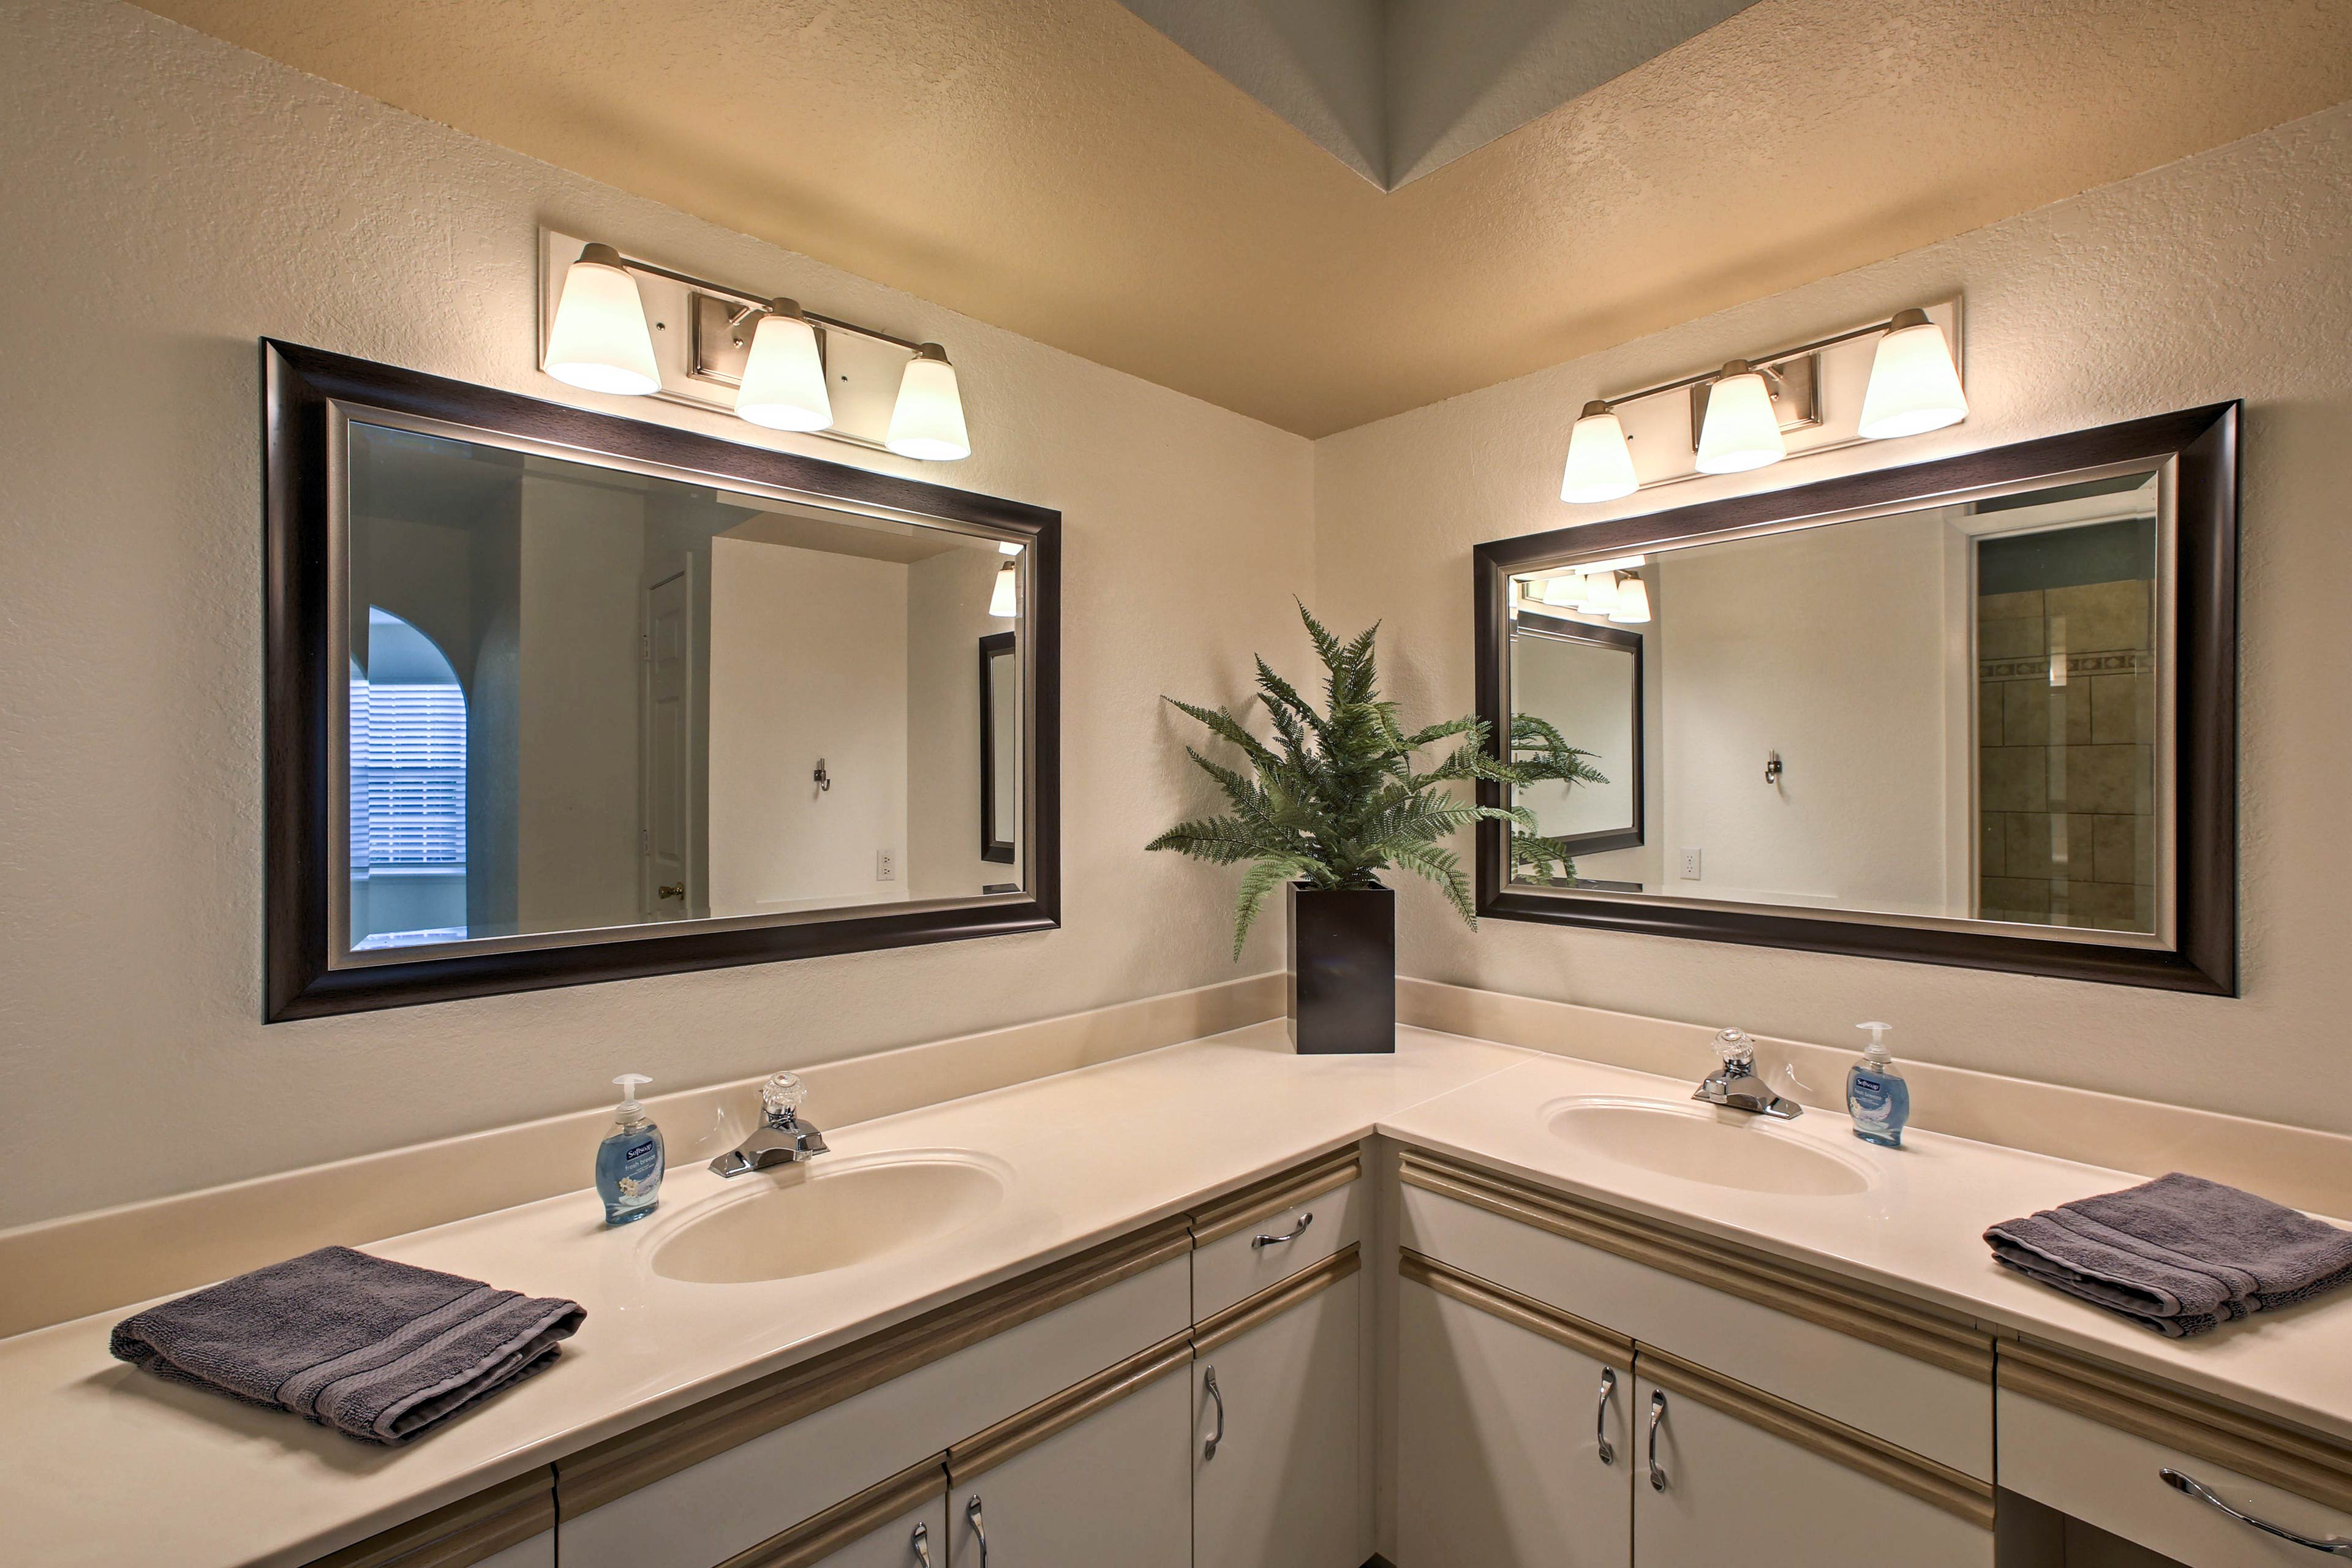 There's plenty of room for 2 at these double sinks in the master en-suite bath.